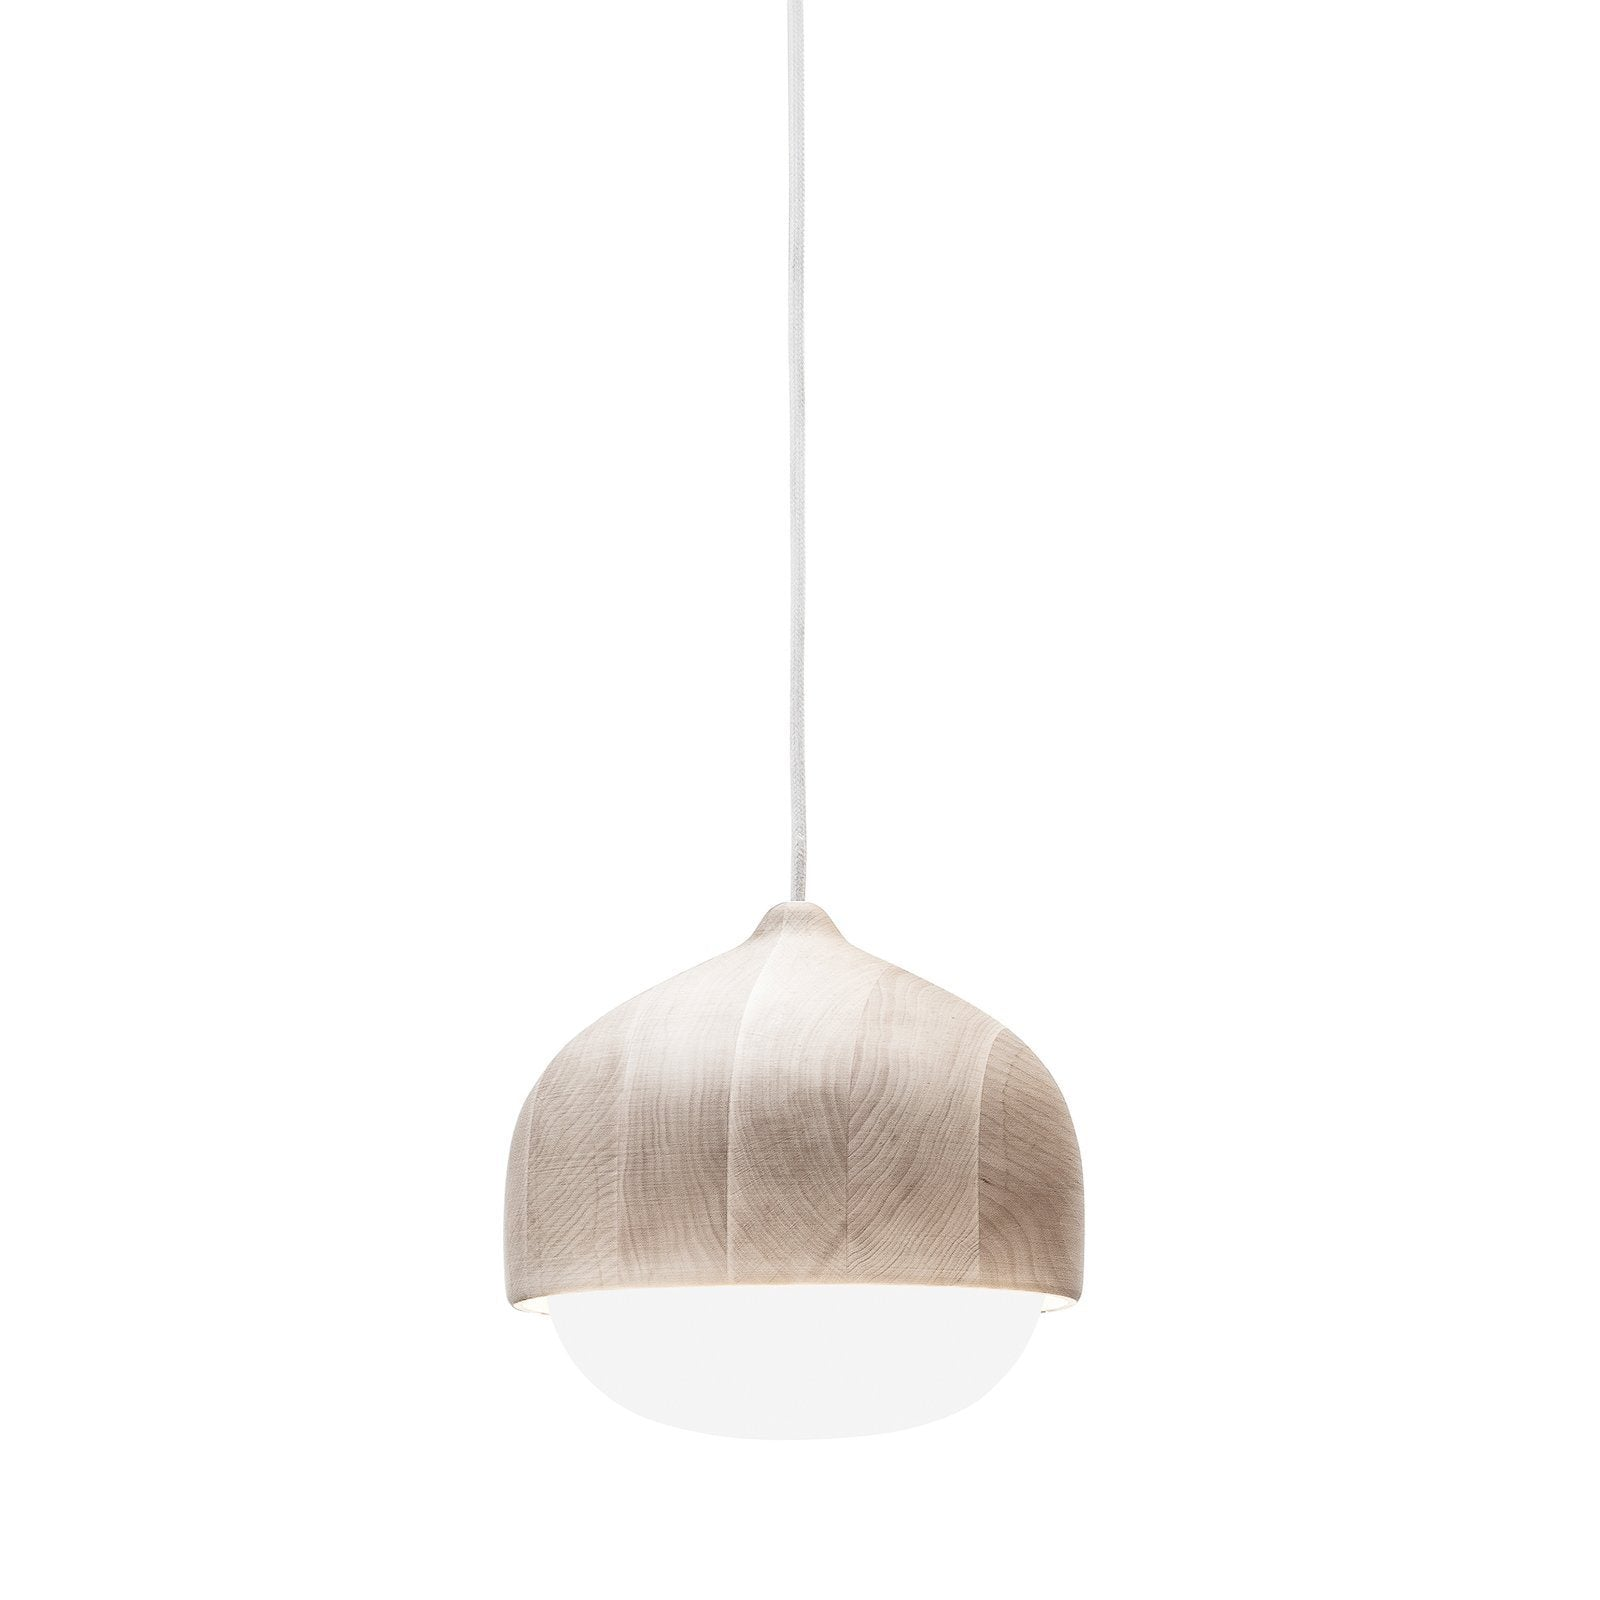 l a lightbox grey studio metal lamp in com made pendant by light muted albert wood